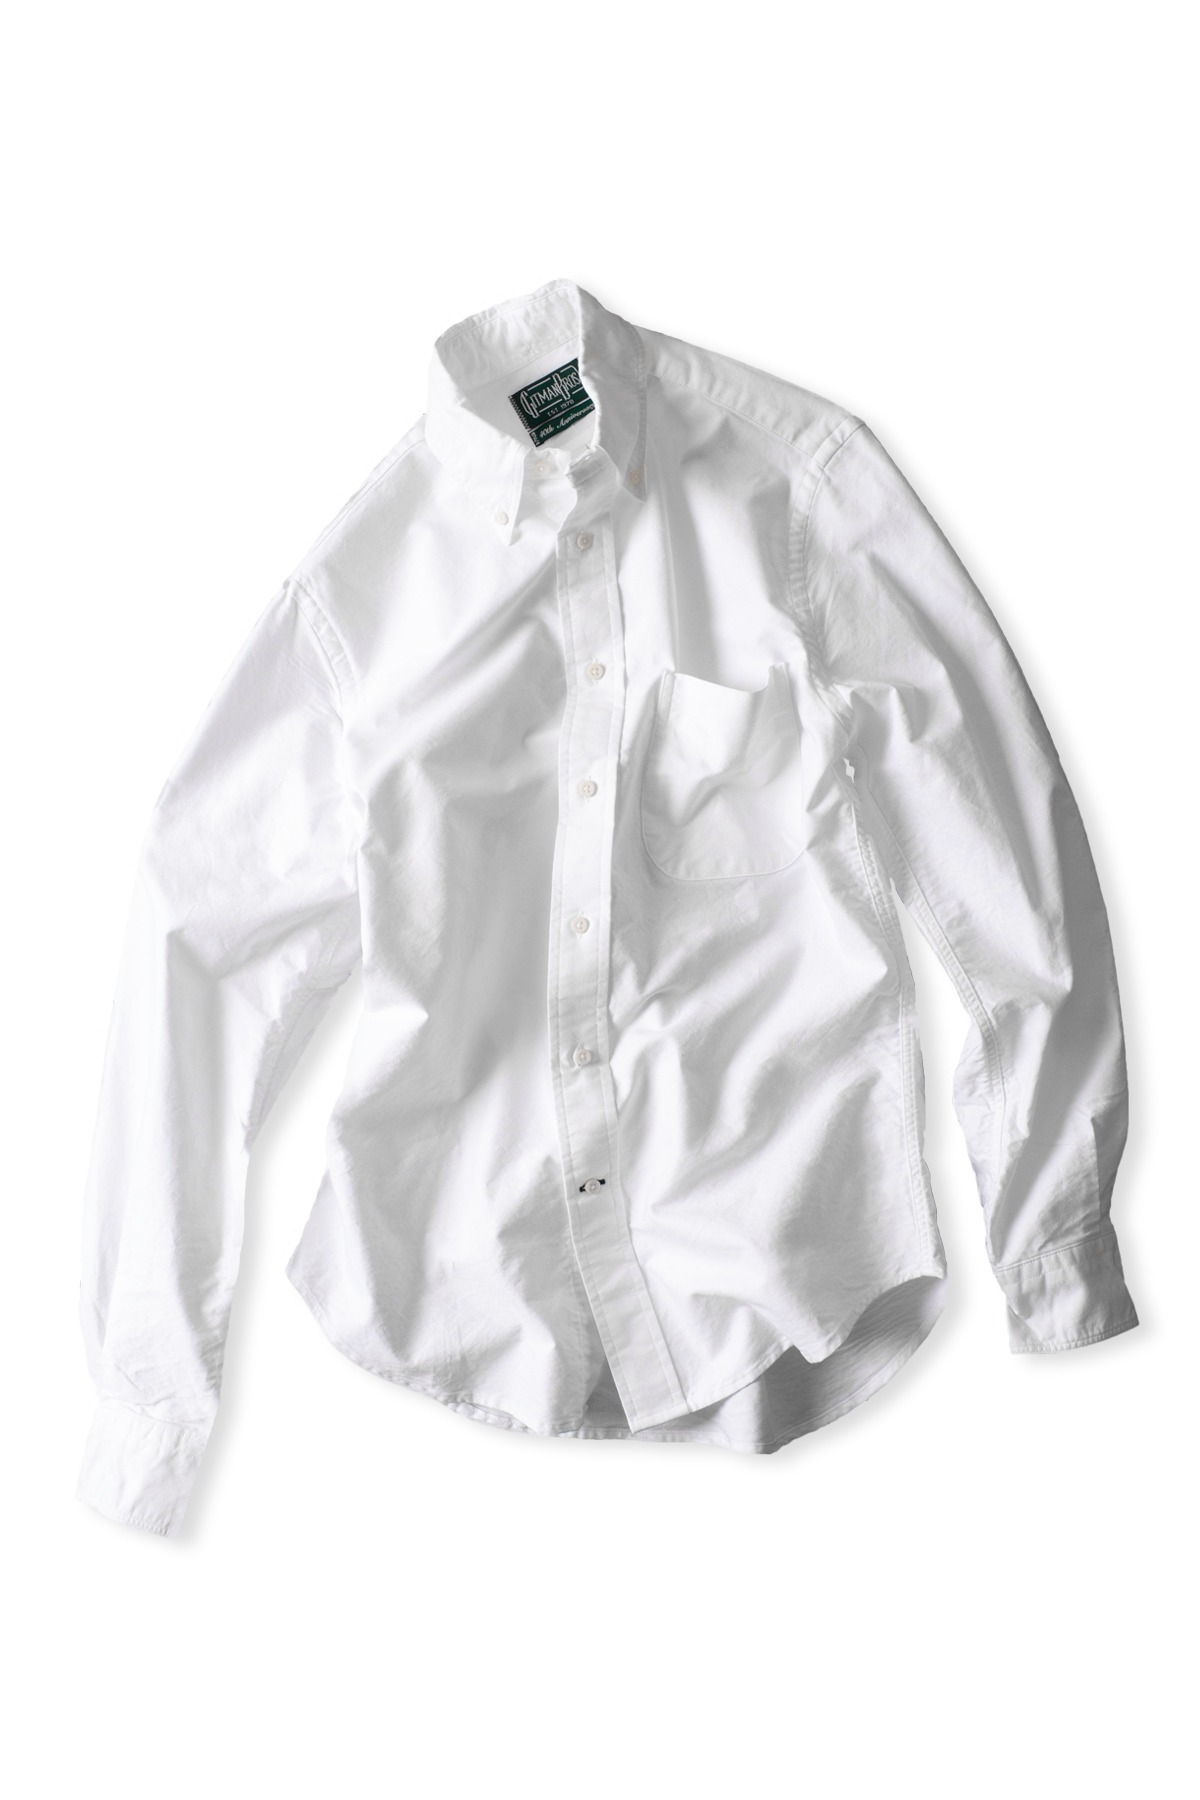 GITMANBROS : Vintage Button Down Shirt (White)